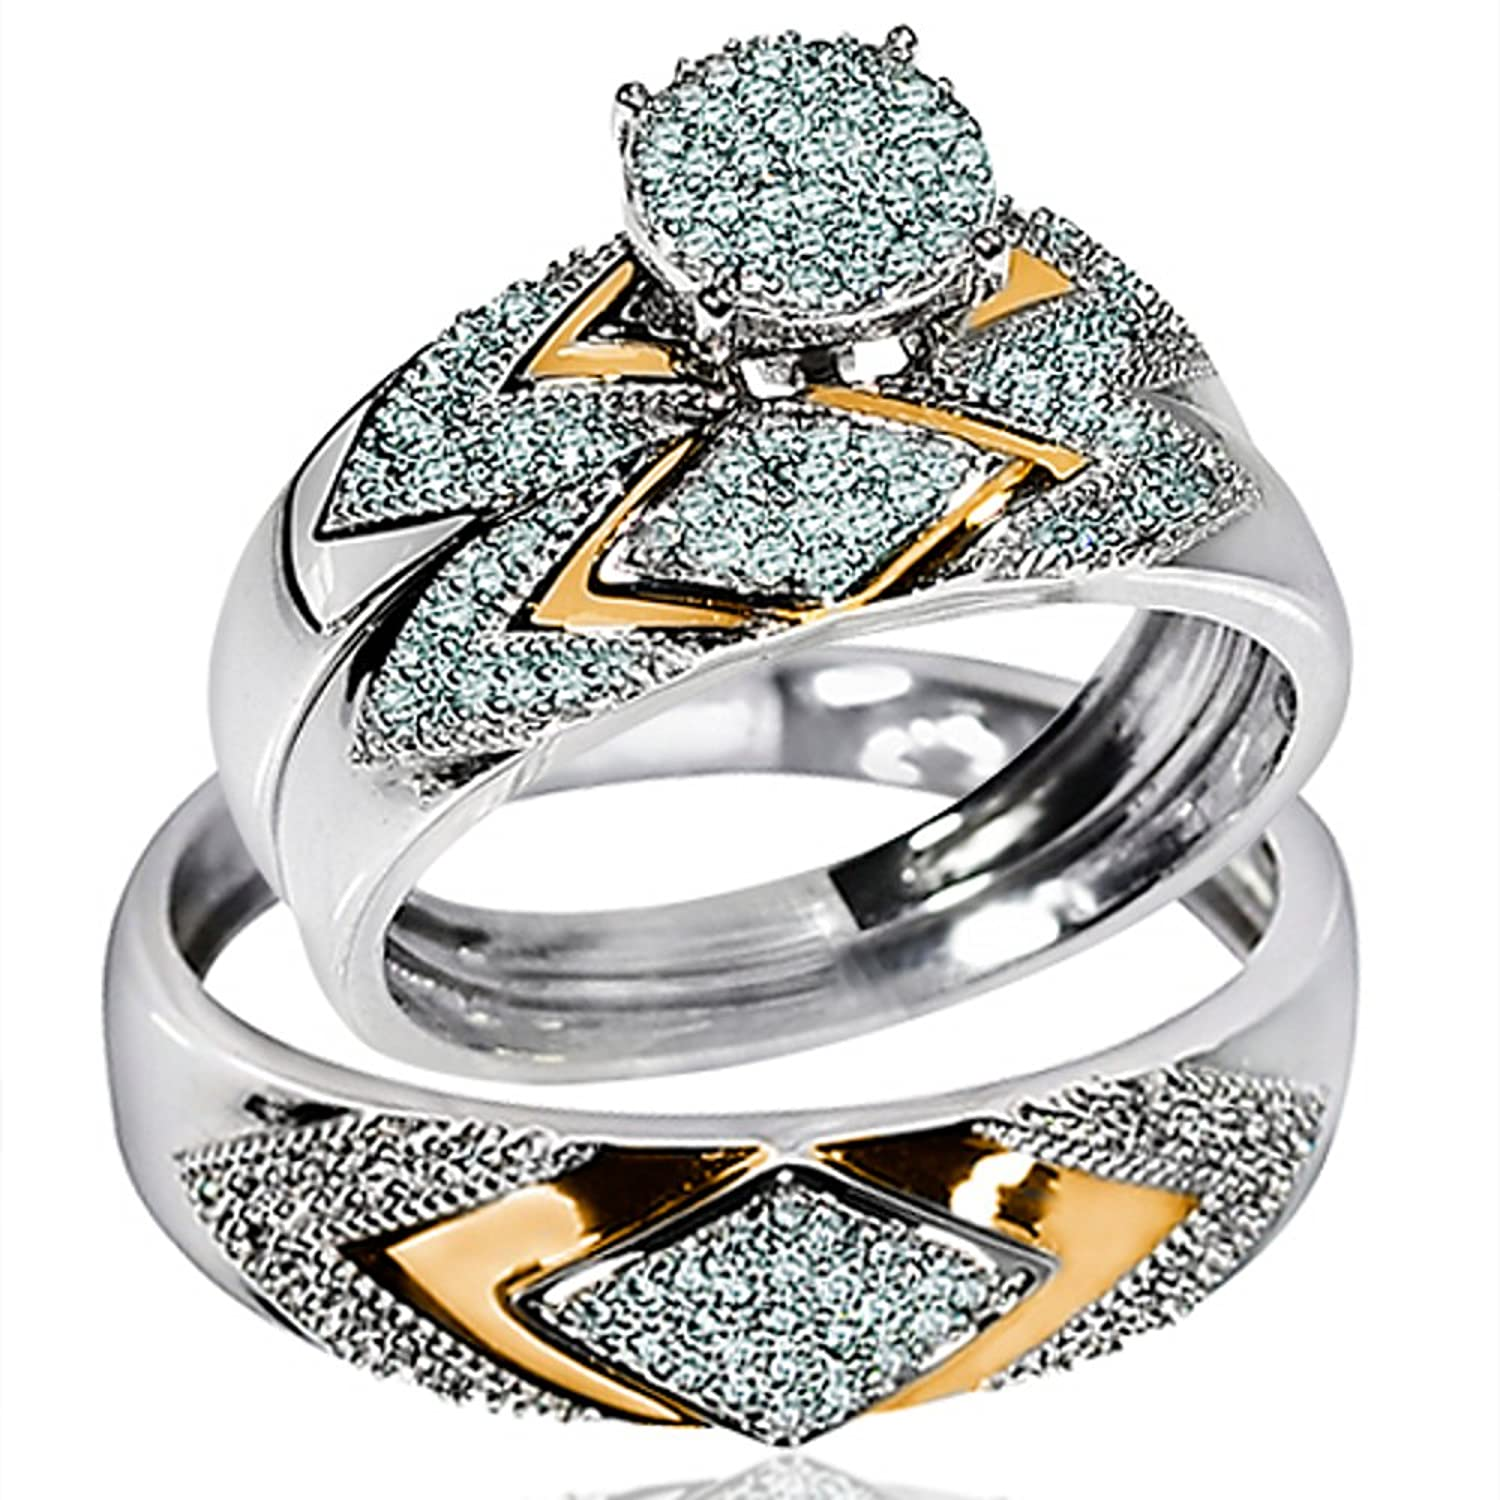 golden diamond choice event plus bands anniversary wedding for rings stunning special